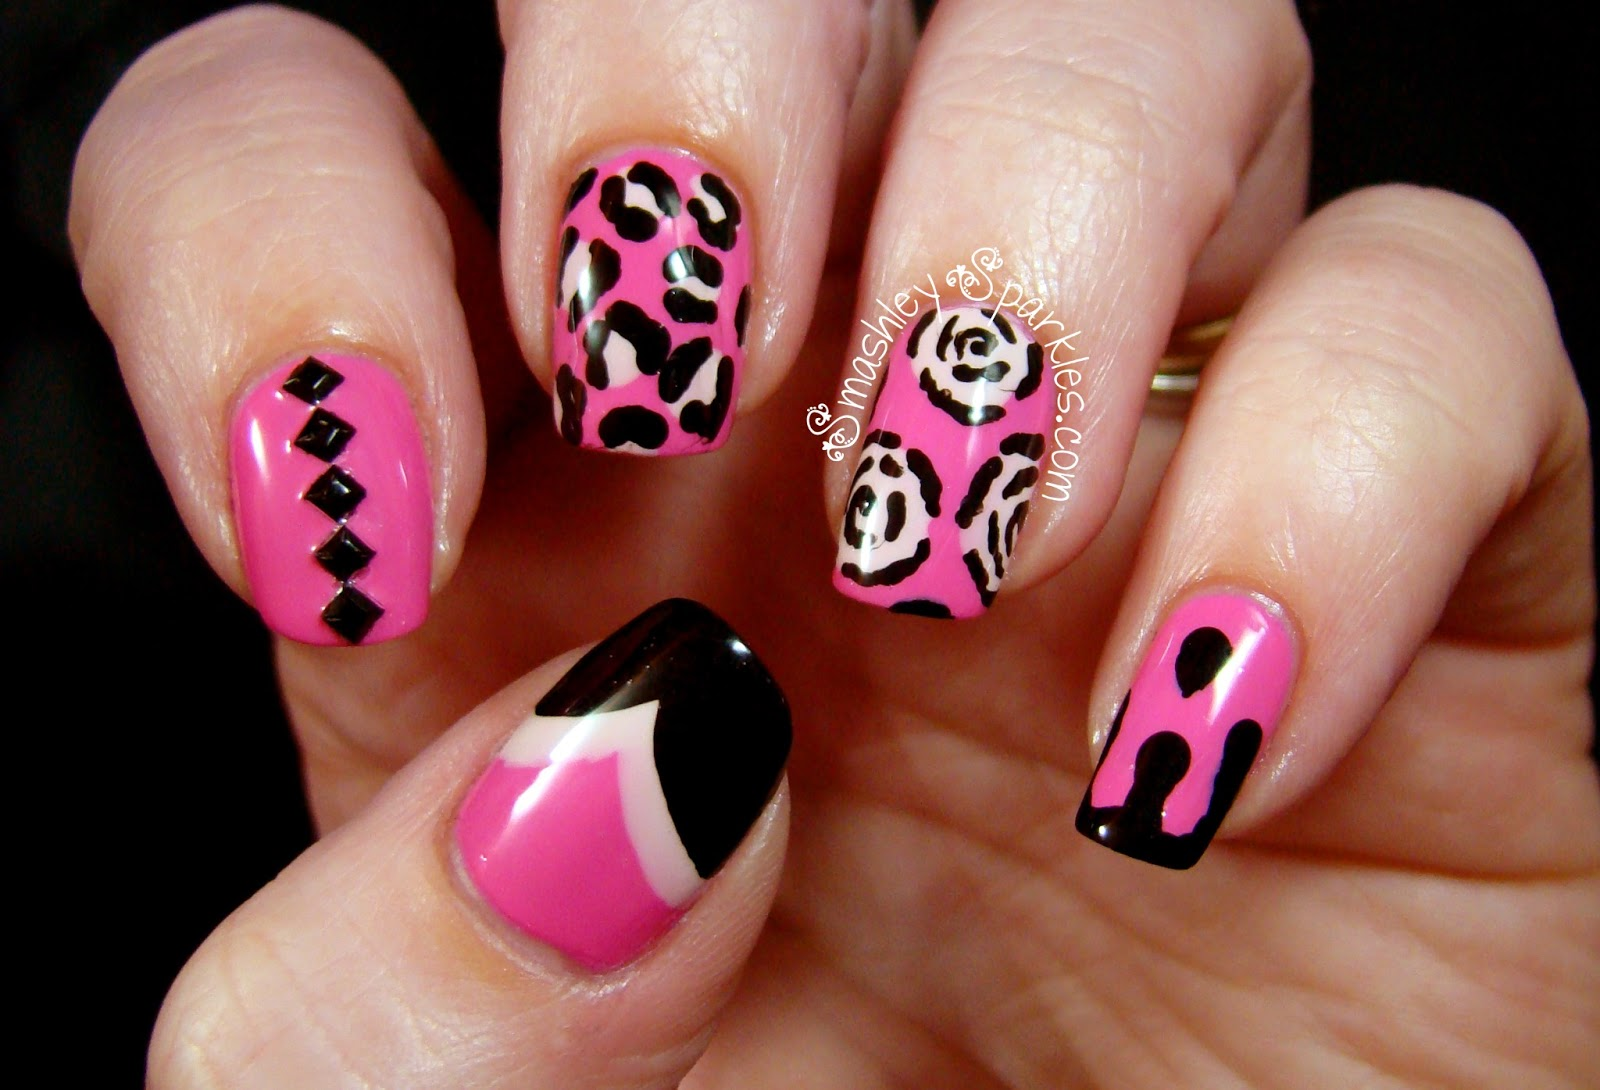 Pink and black nail designs 14 widescreen wallpaper pink and black nail designs 14 widescreen wallpaper prinsesfo Choice Image